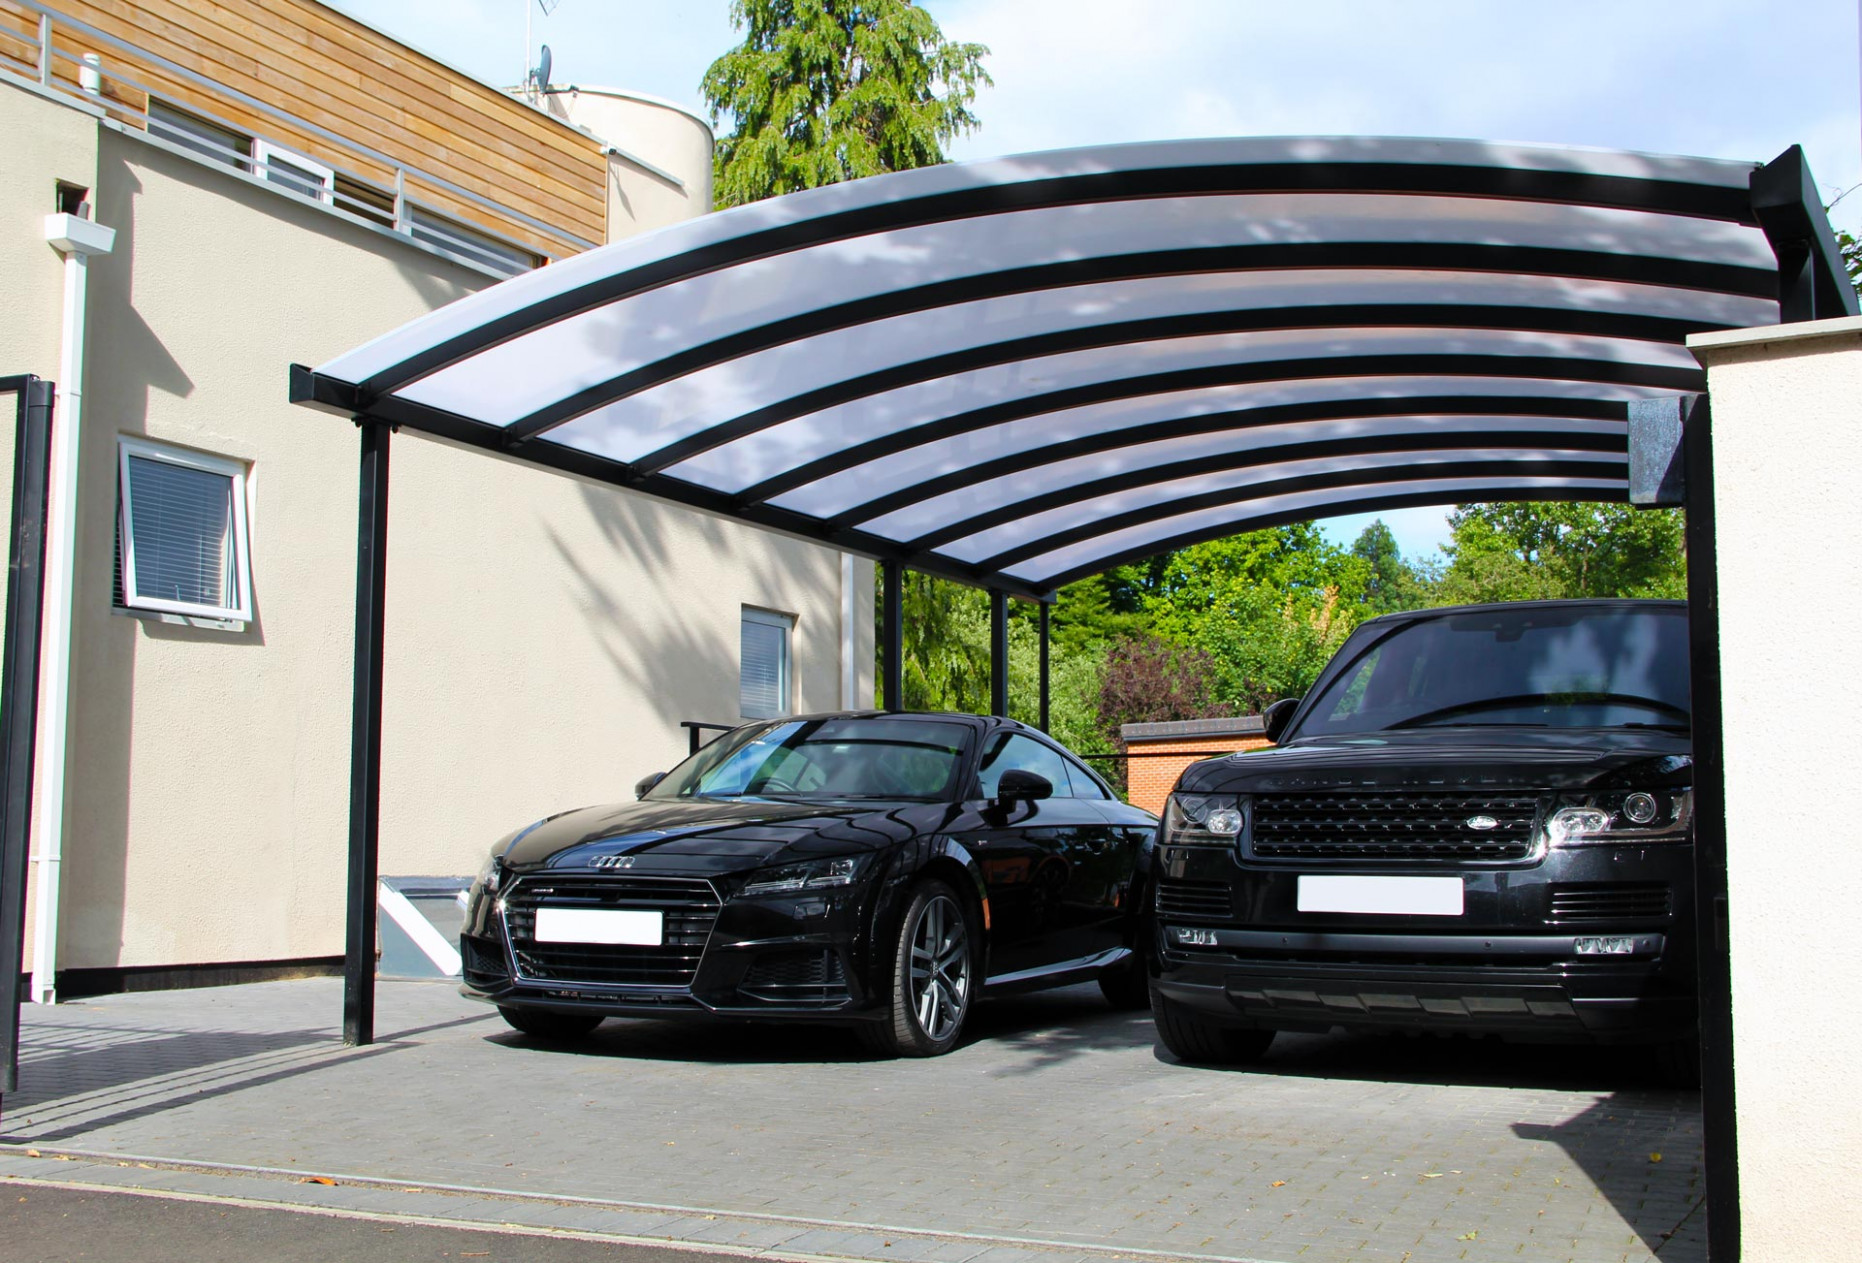 Car Port Canopy For Cars | Kappion Carports & Canopies Carports Contemporary Quotes